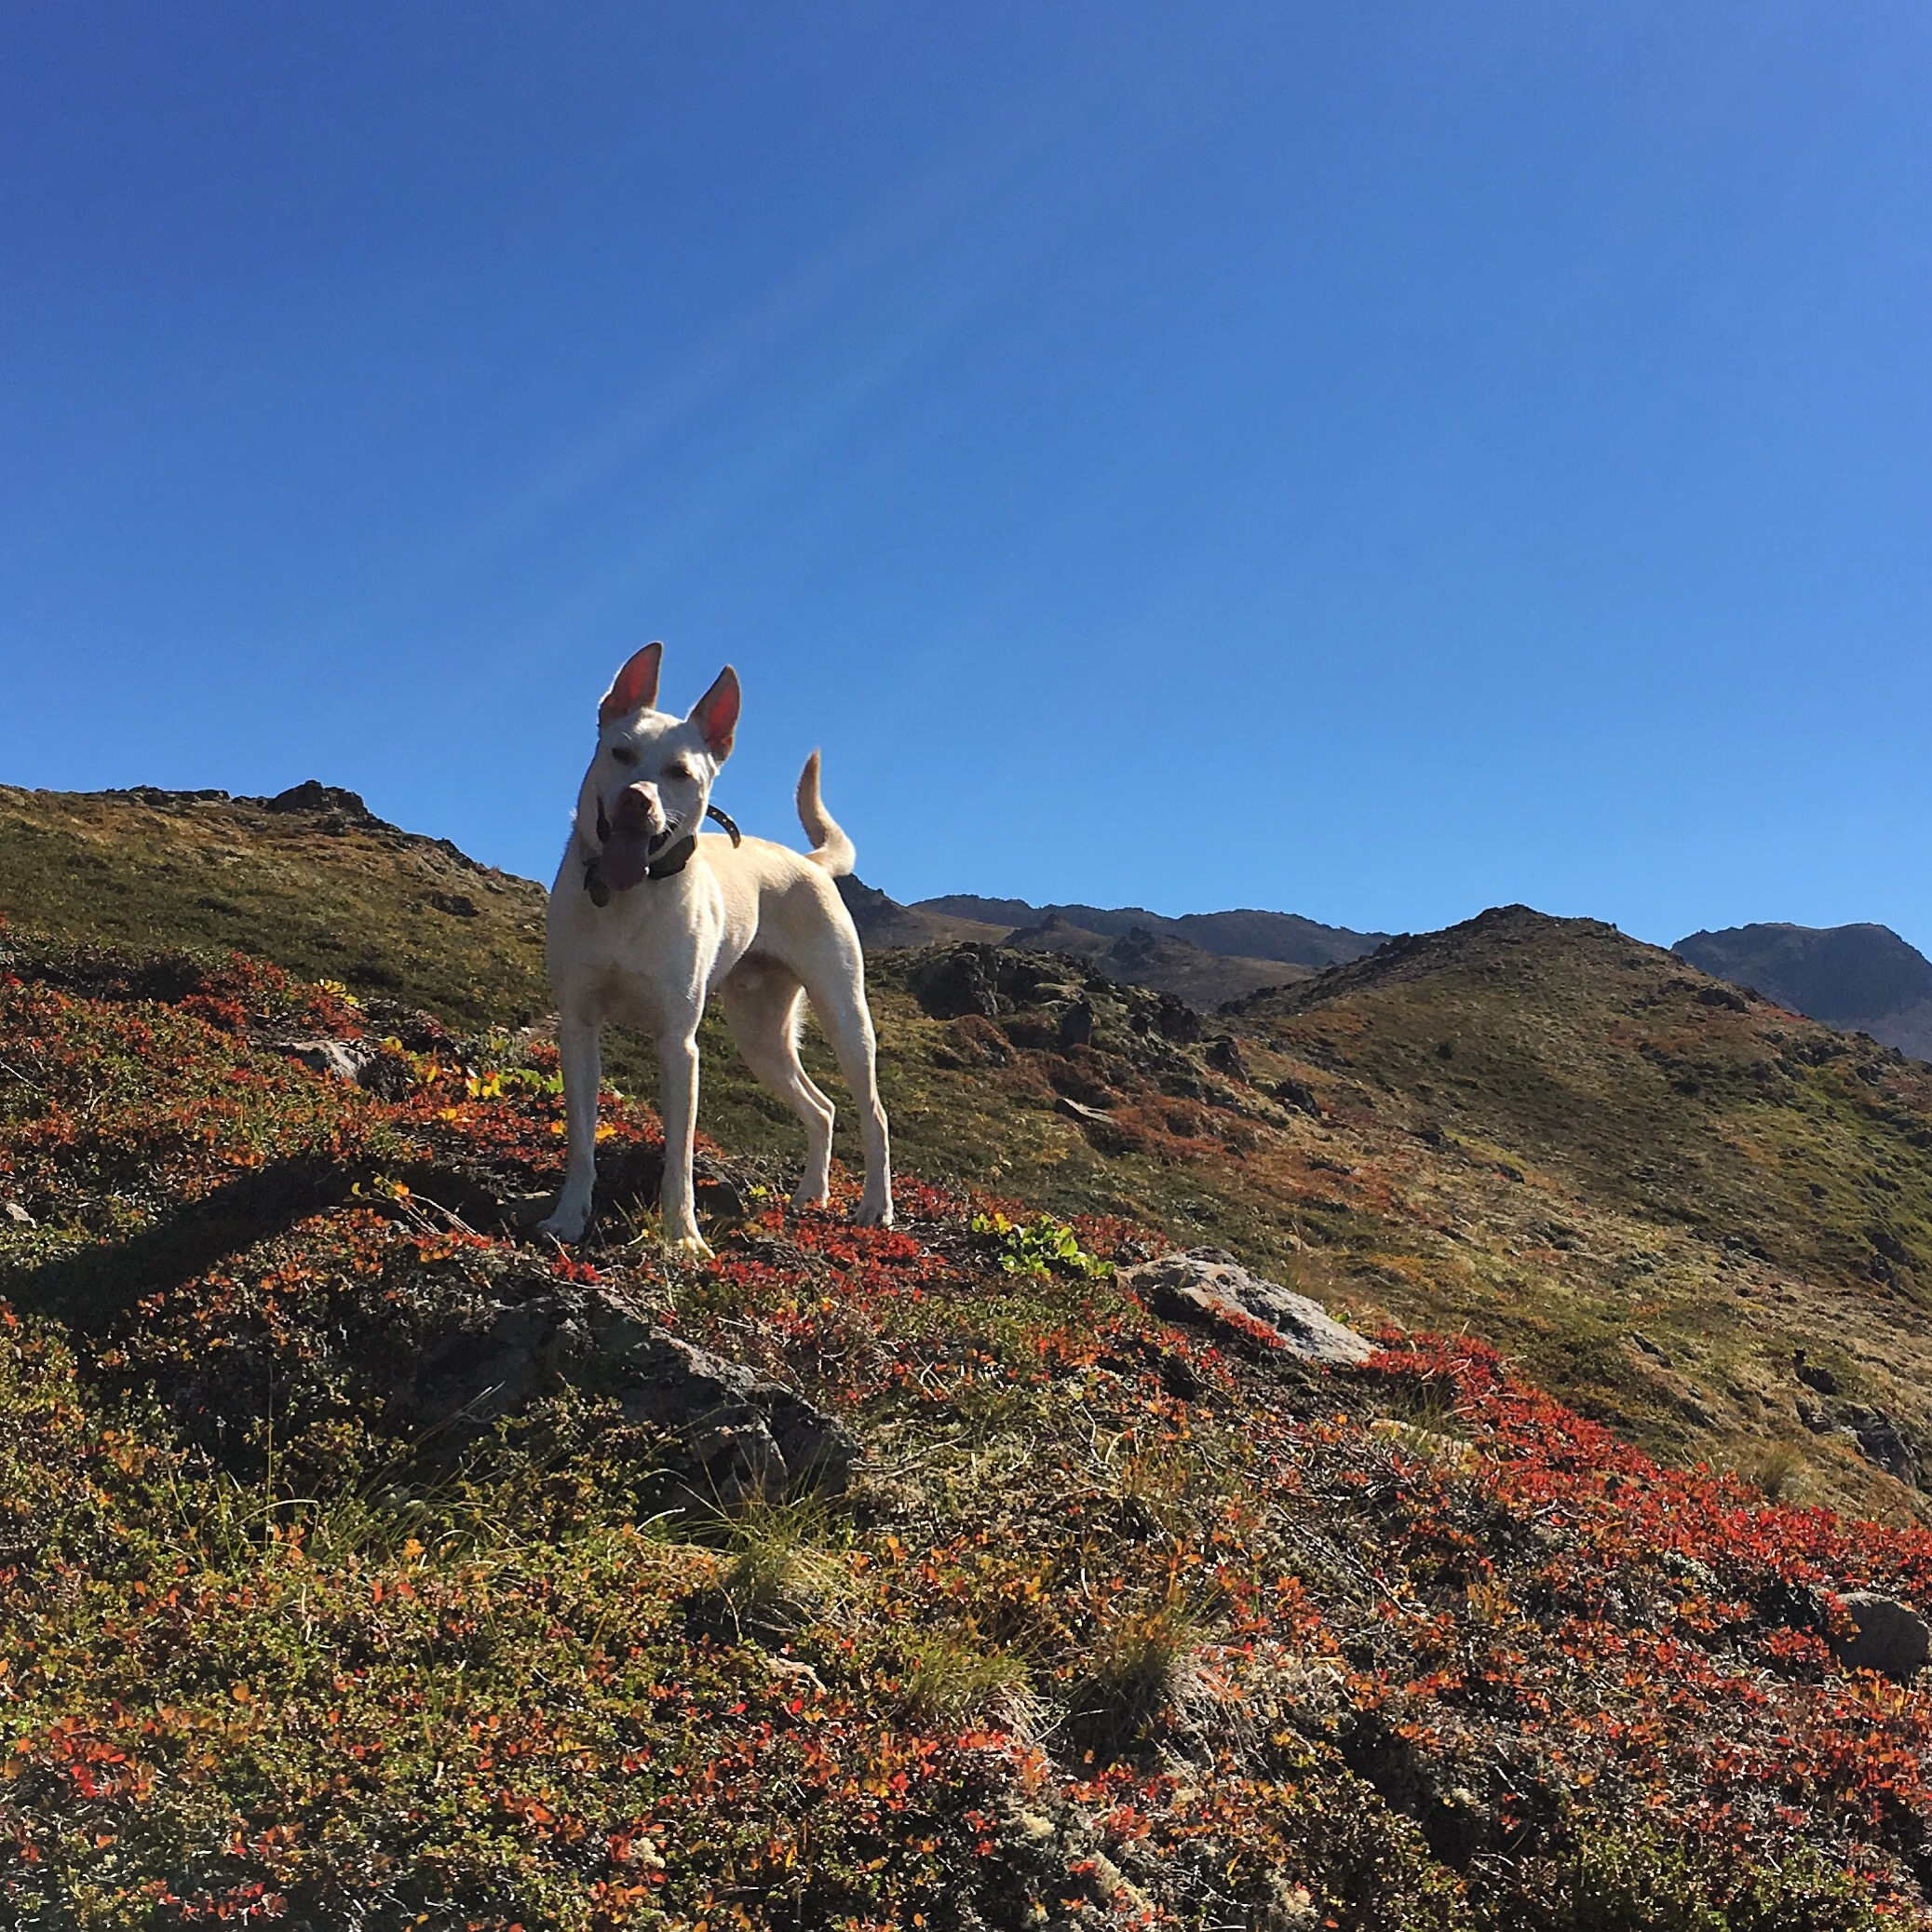 Shiro, stoked out of his mind for mountains per usual.